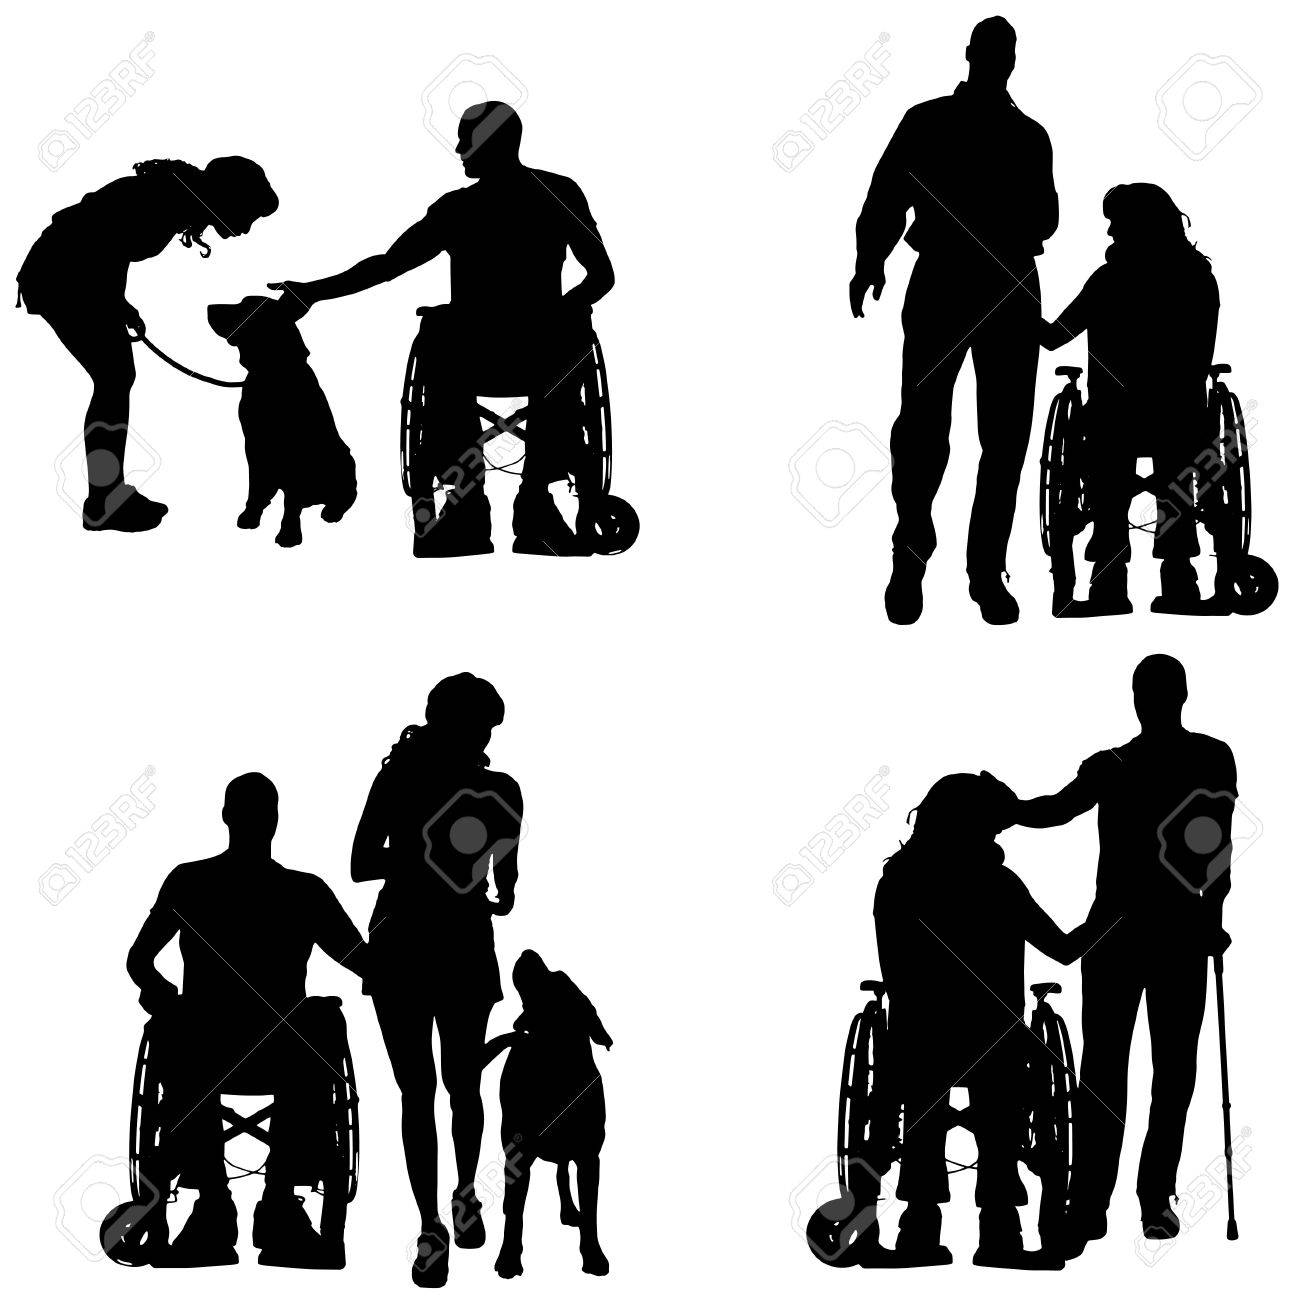 Wheelchair Silhouette - Vector vector silhouettes of people in a wheelchair on a white background